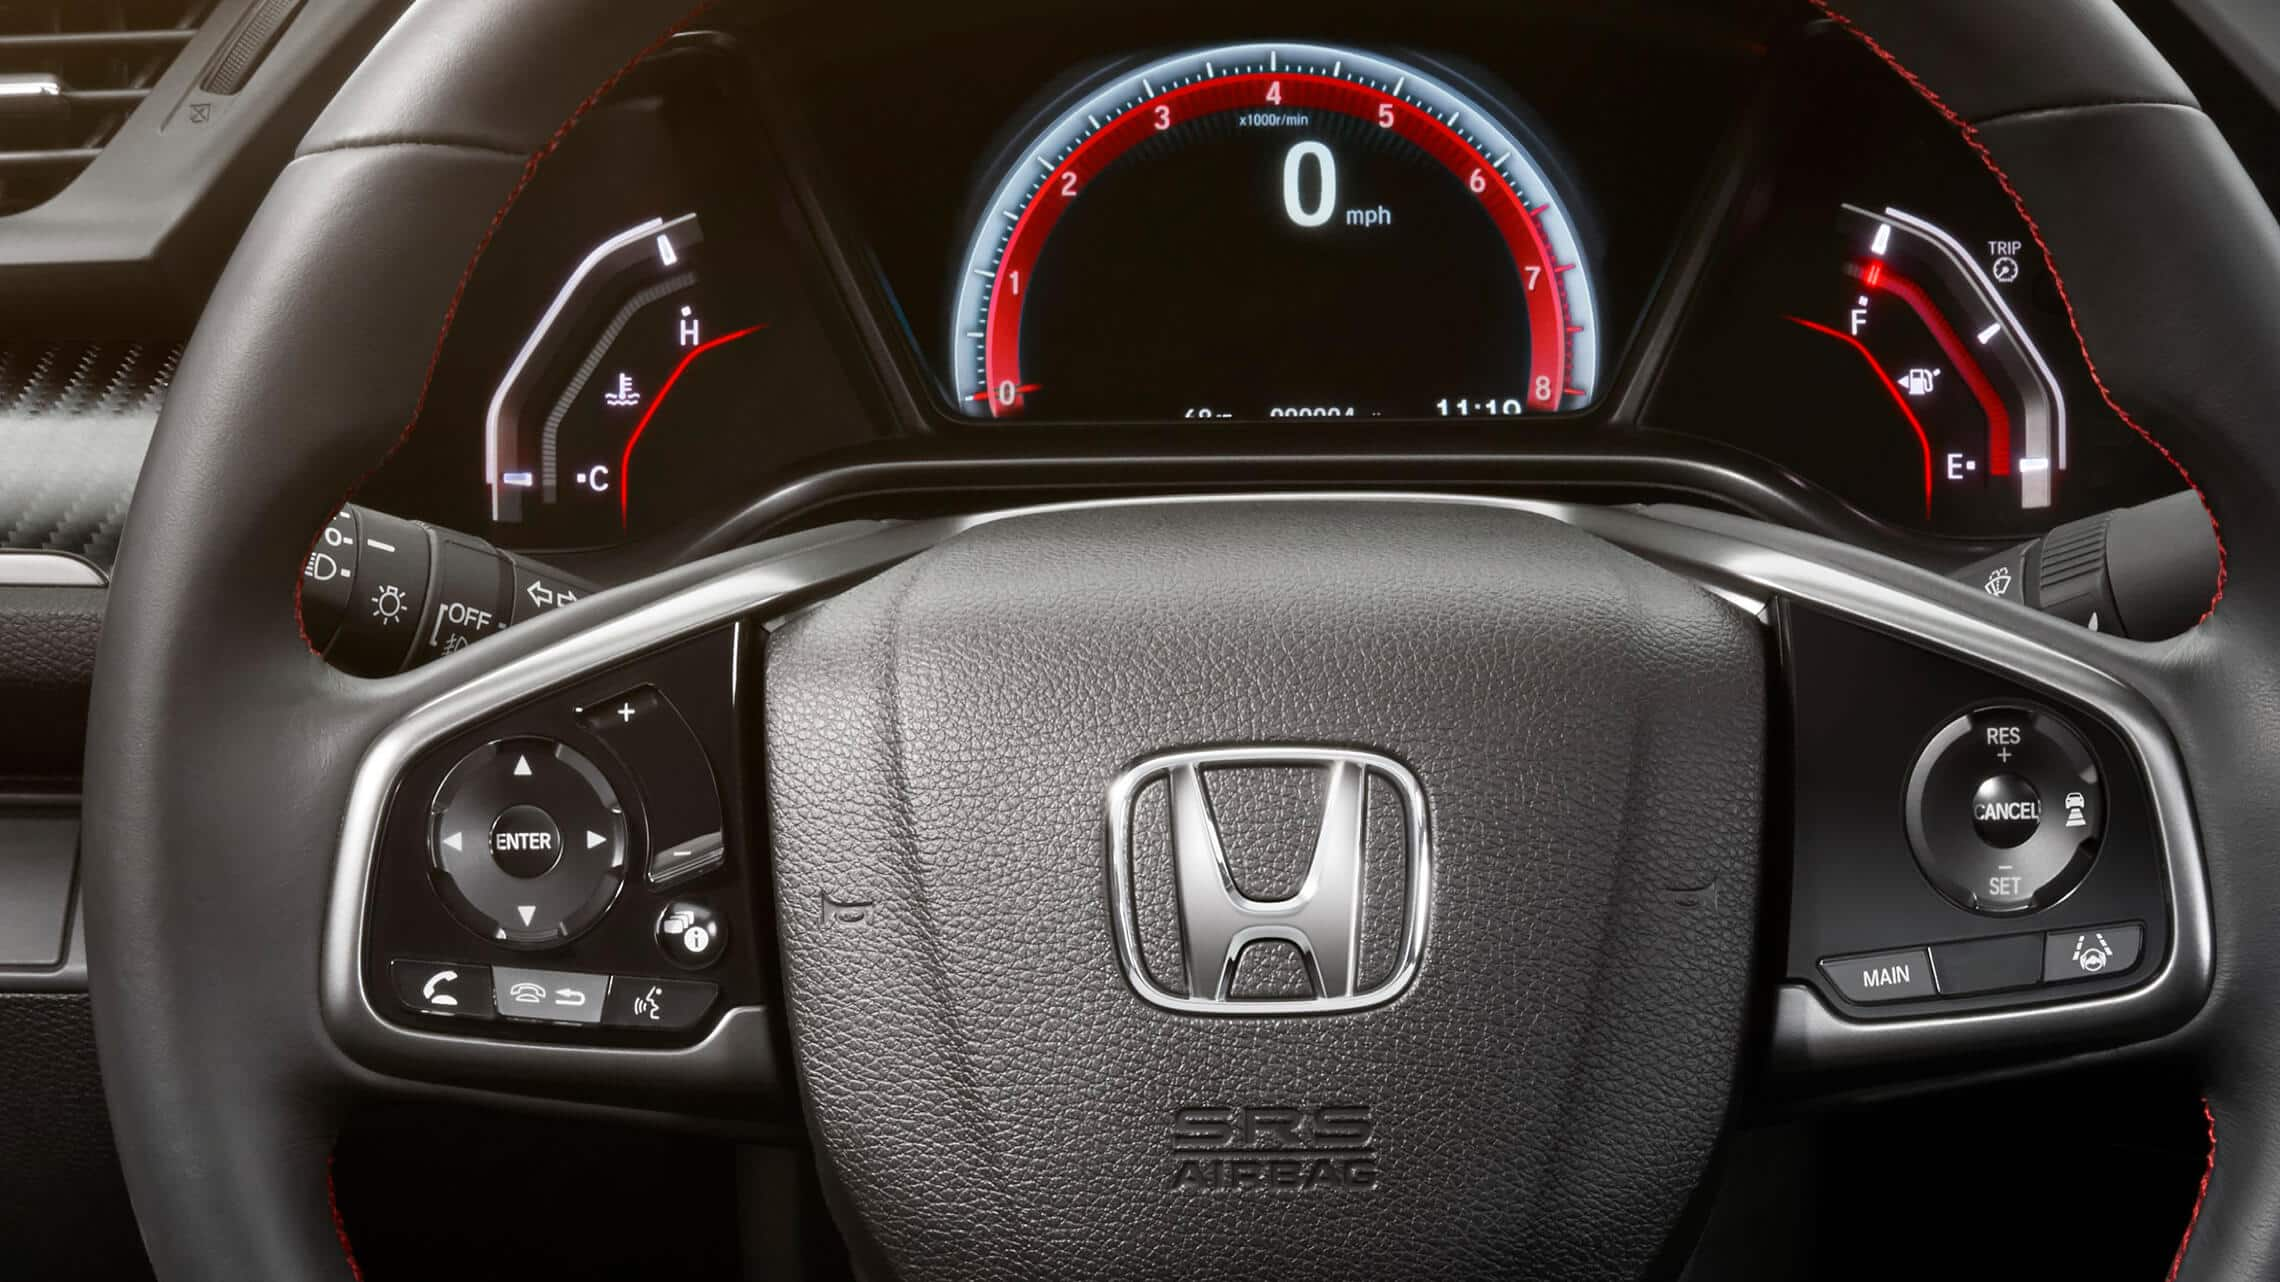 Steering wheel-mounted controls detail on 2020 Honda Civic Si Sedan.